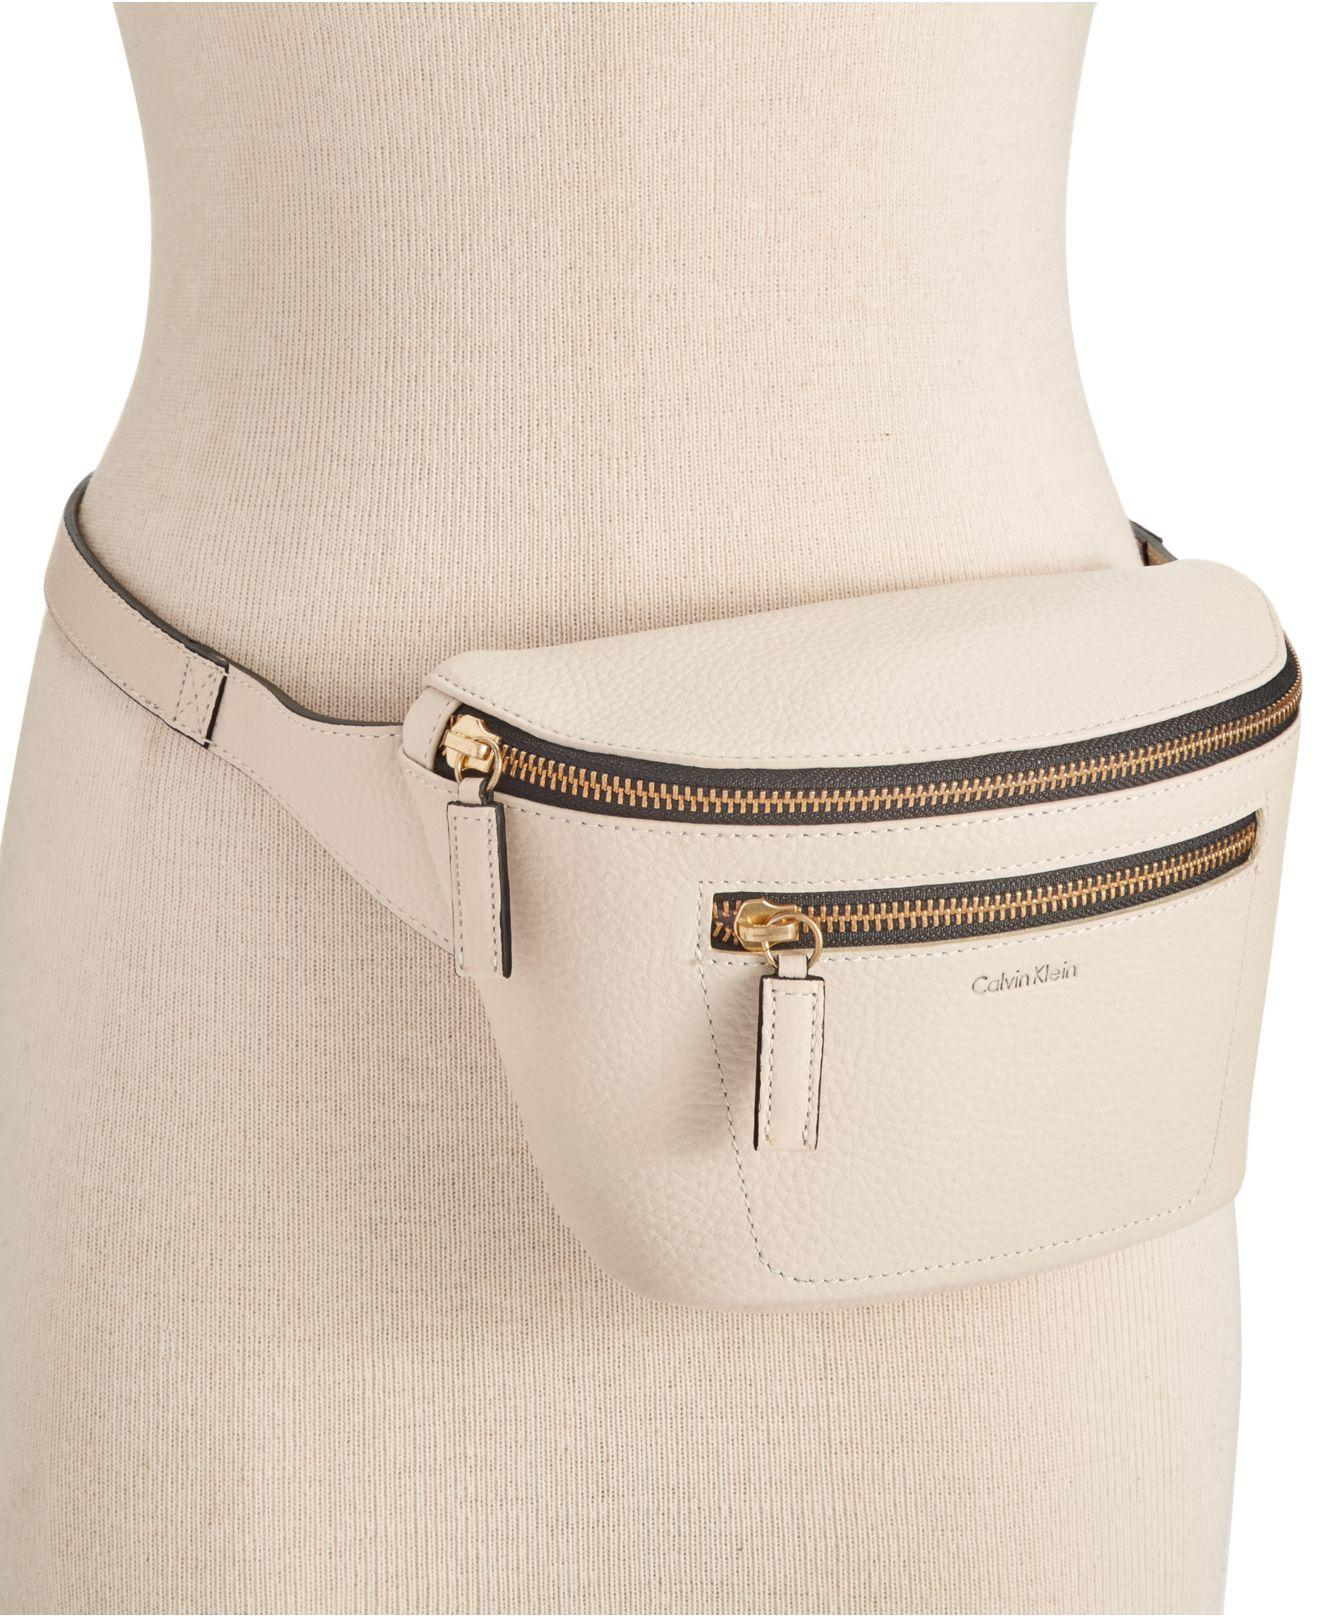 Lyst - CALVIN KLEIN 205W39NYC Pebble Leather Belt Bag in White dcdaaa49d6c